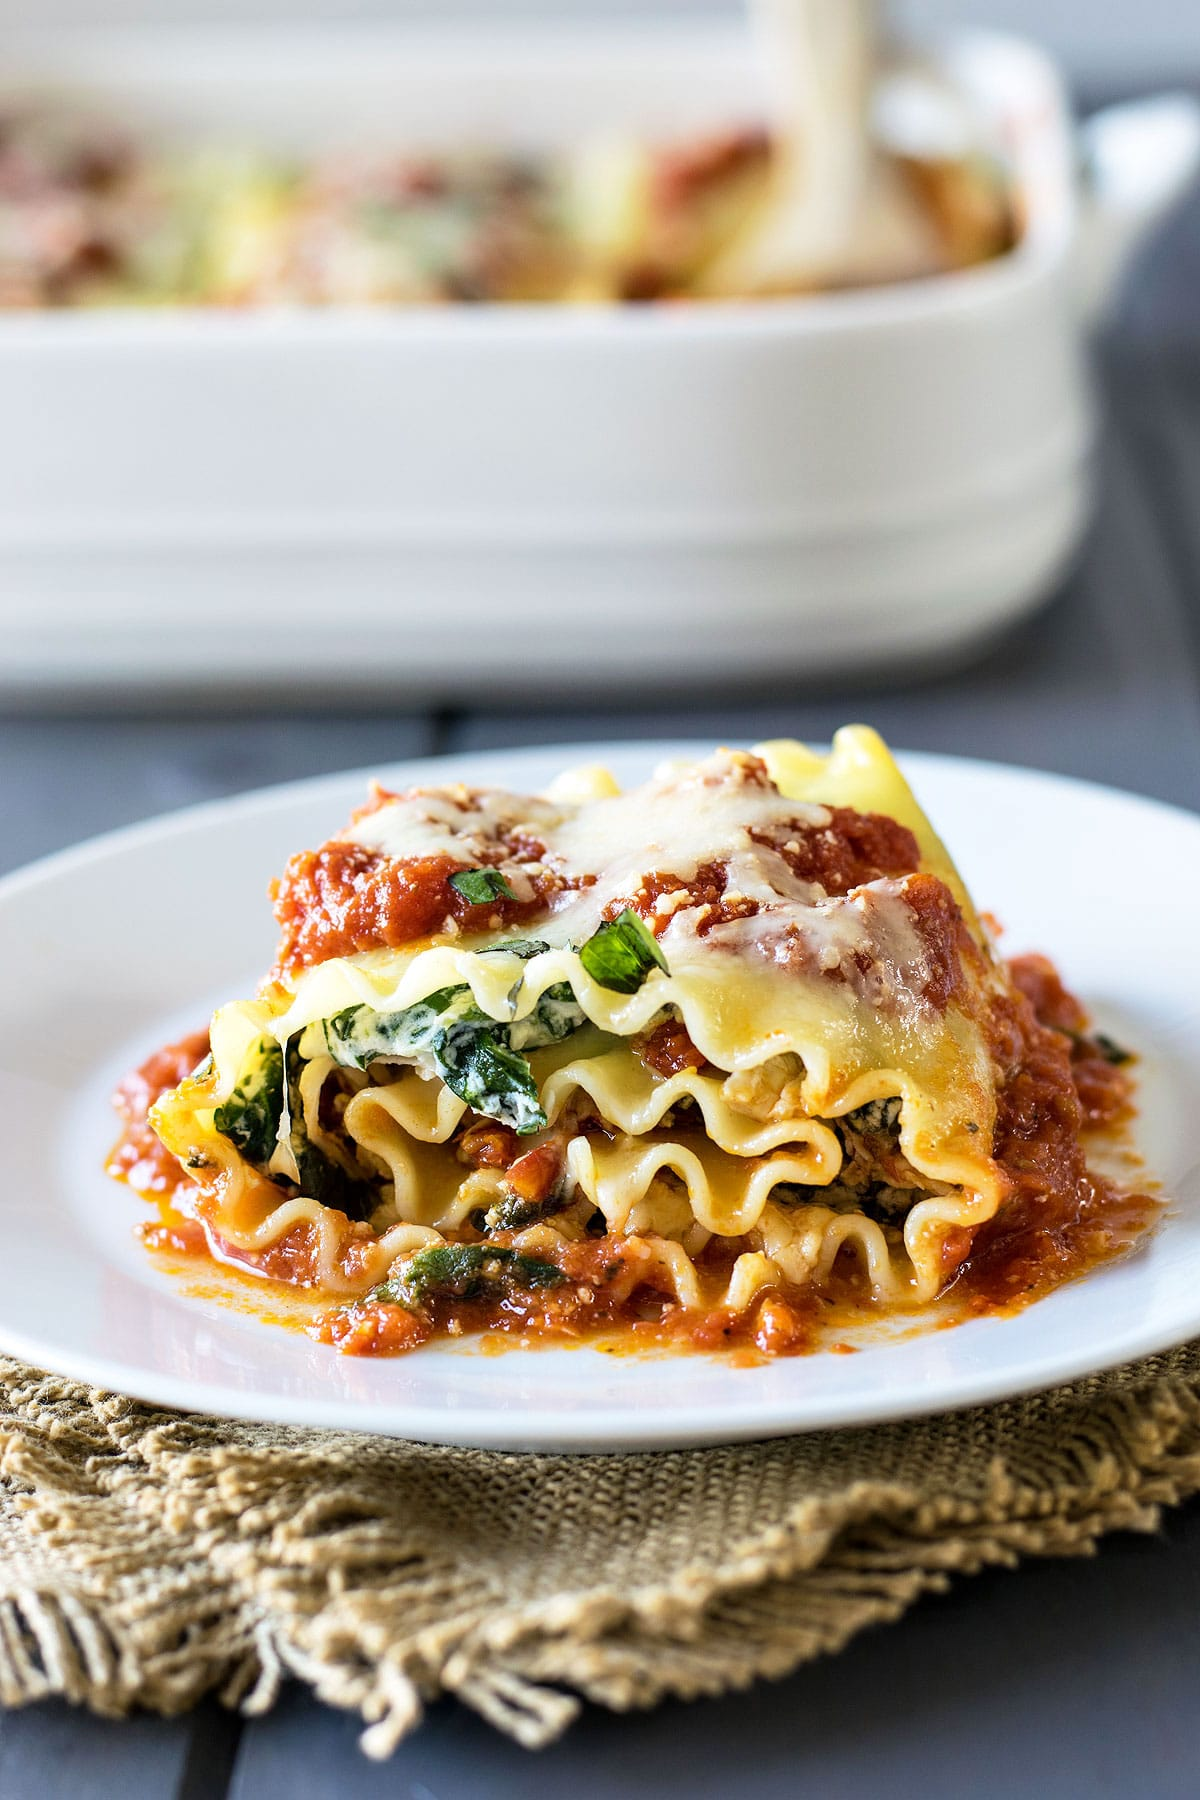 Chicken and Sun Dried Tomato Lasagna Roll-Ups! Take the delicious combo of chicken and sun dried tomatoes and wrap them up in a lasagna roll-up. Two great classics make a bold new flavor! | HomemadeHooplah.com